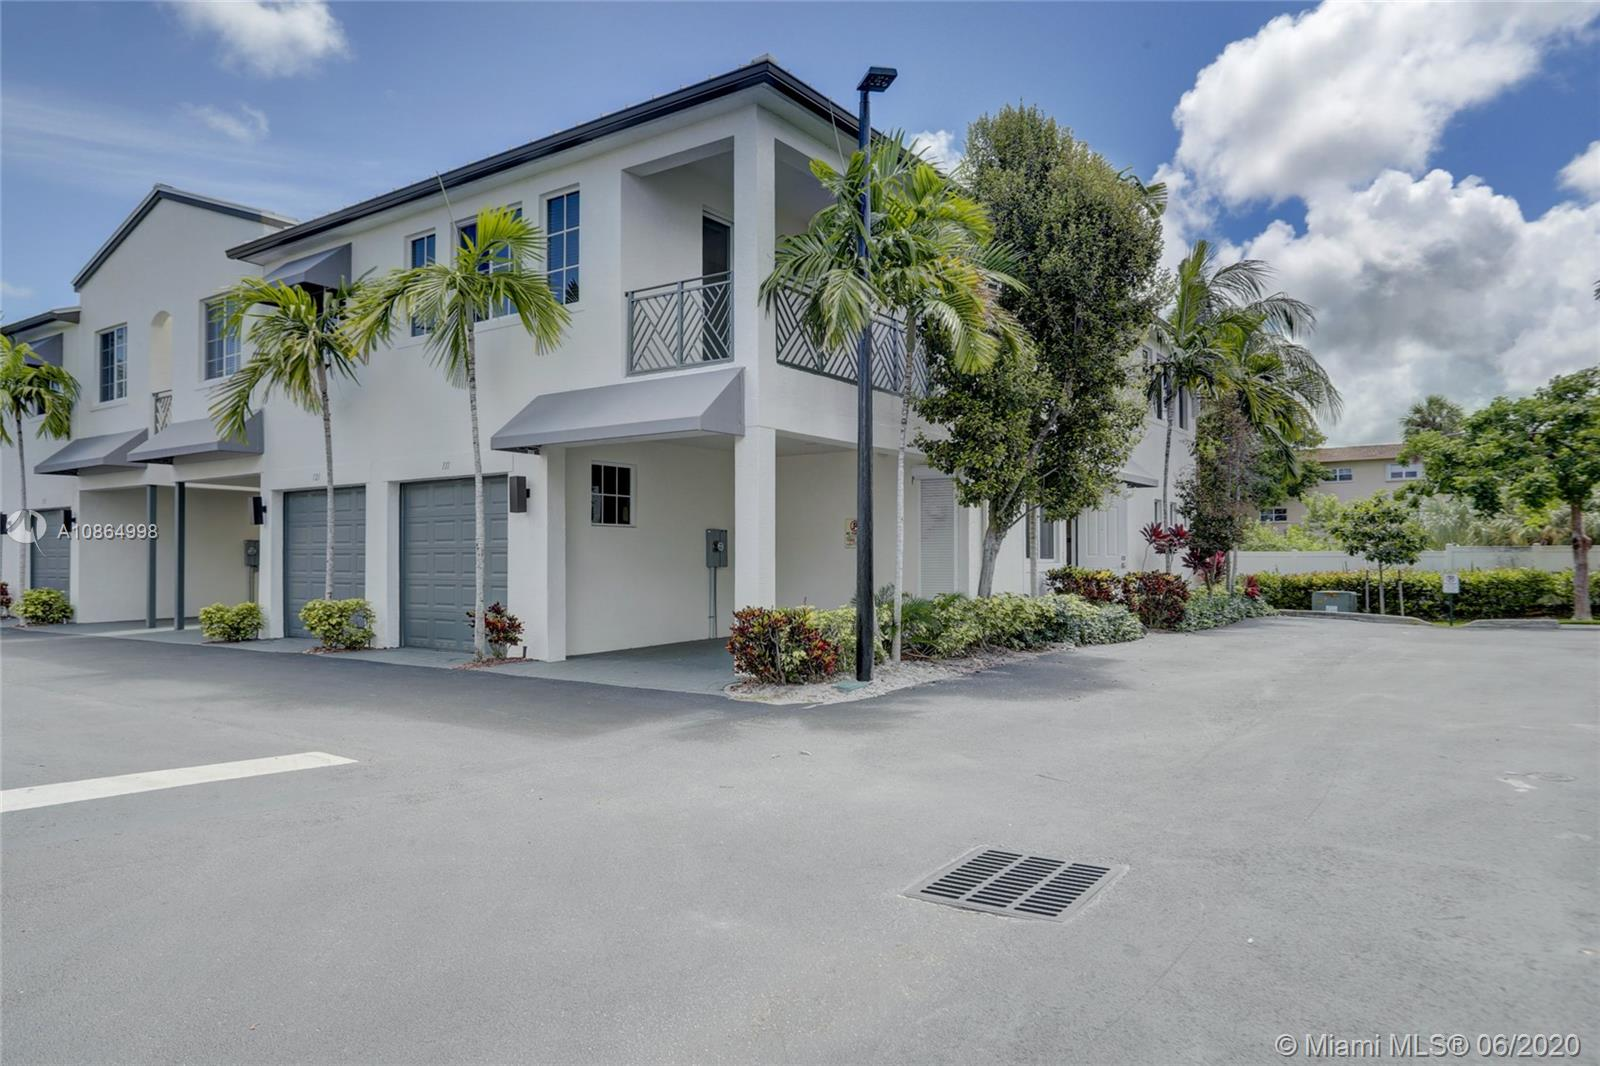 Wow, move-in ready 3/3.5 townhouse priced 70k below newer models in the community with similar finishes & low HOA fees.  This two-story, northwest facing end unit includes a huge loft in a gated community in up & coming Pompano Beach. Recent upgrades include kitchen cabinet crown molding, new awnings & light fixtures & freshly painted inside & out. Open & inviting floor plan with 3 over-sized bedrooms including a downstairs master with Jacuzzi tub, & two second level en-suite bedrooms that could also be a master. Open kitchen overlooking the spacious family room & breakfast nook. Tile flooring on the first floor & carpet on the second. Huge loft upstairs can be used as an entertainment room, gym, or play area for the kids. Impact windows & doors, plus one car garage and carport.